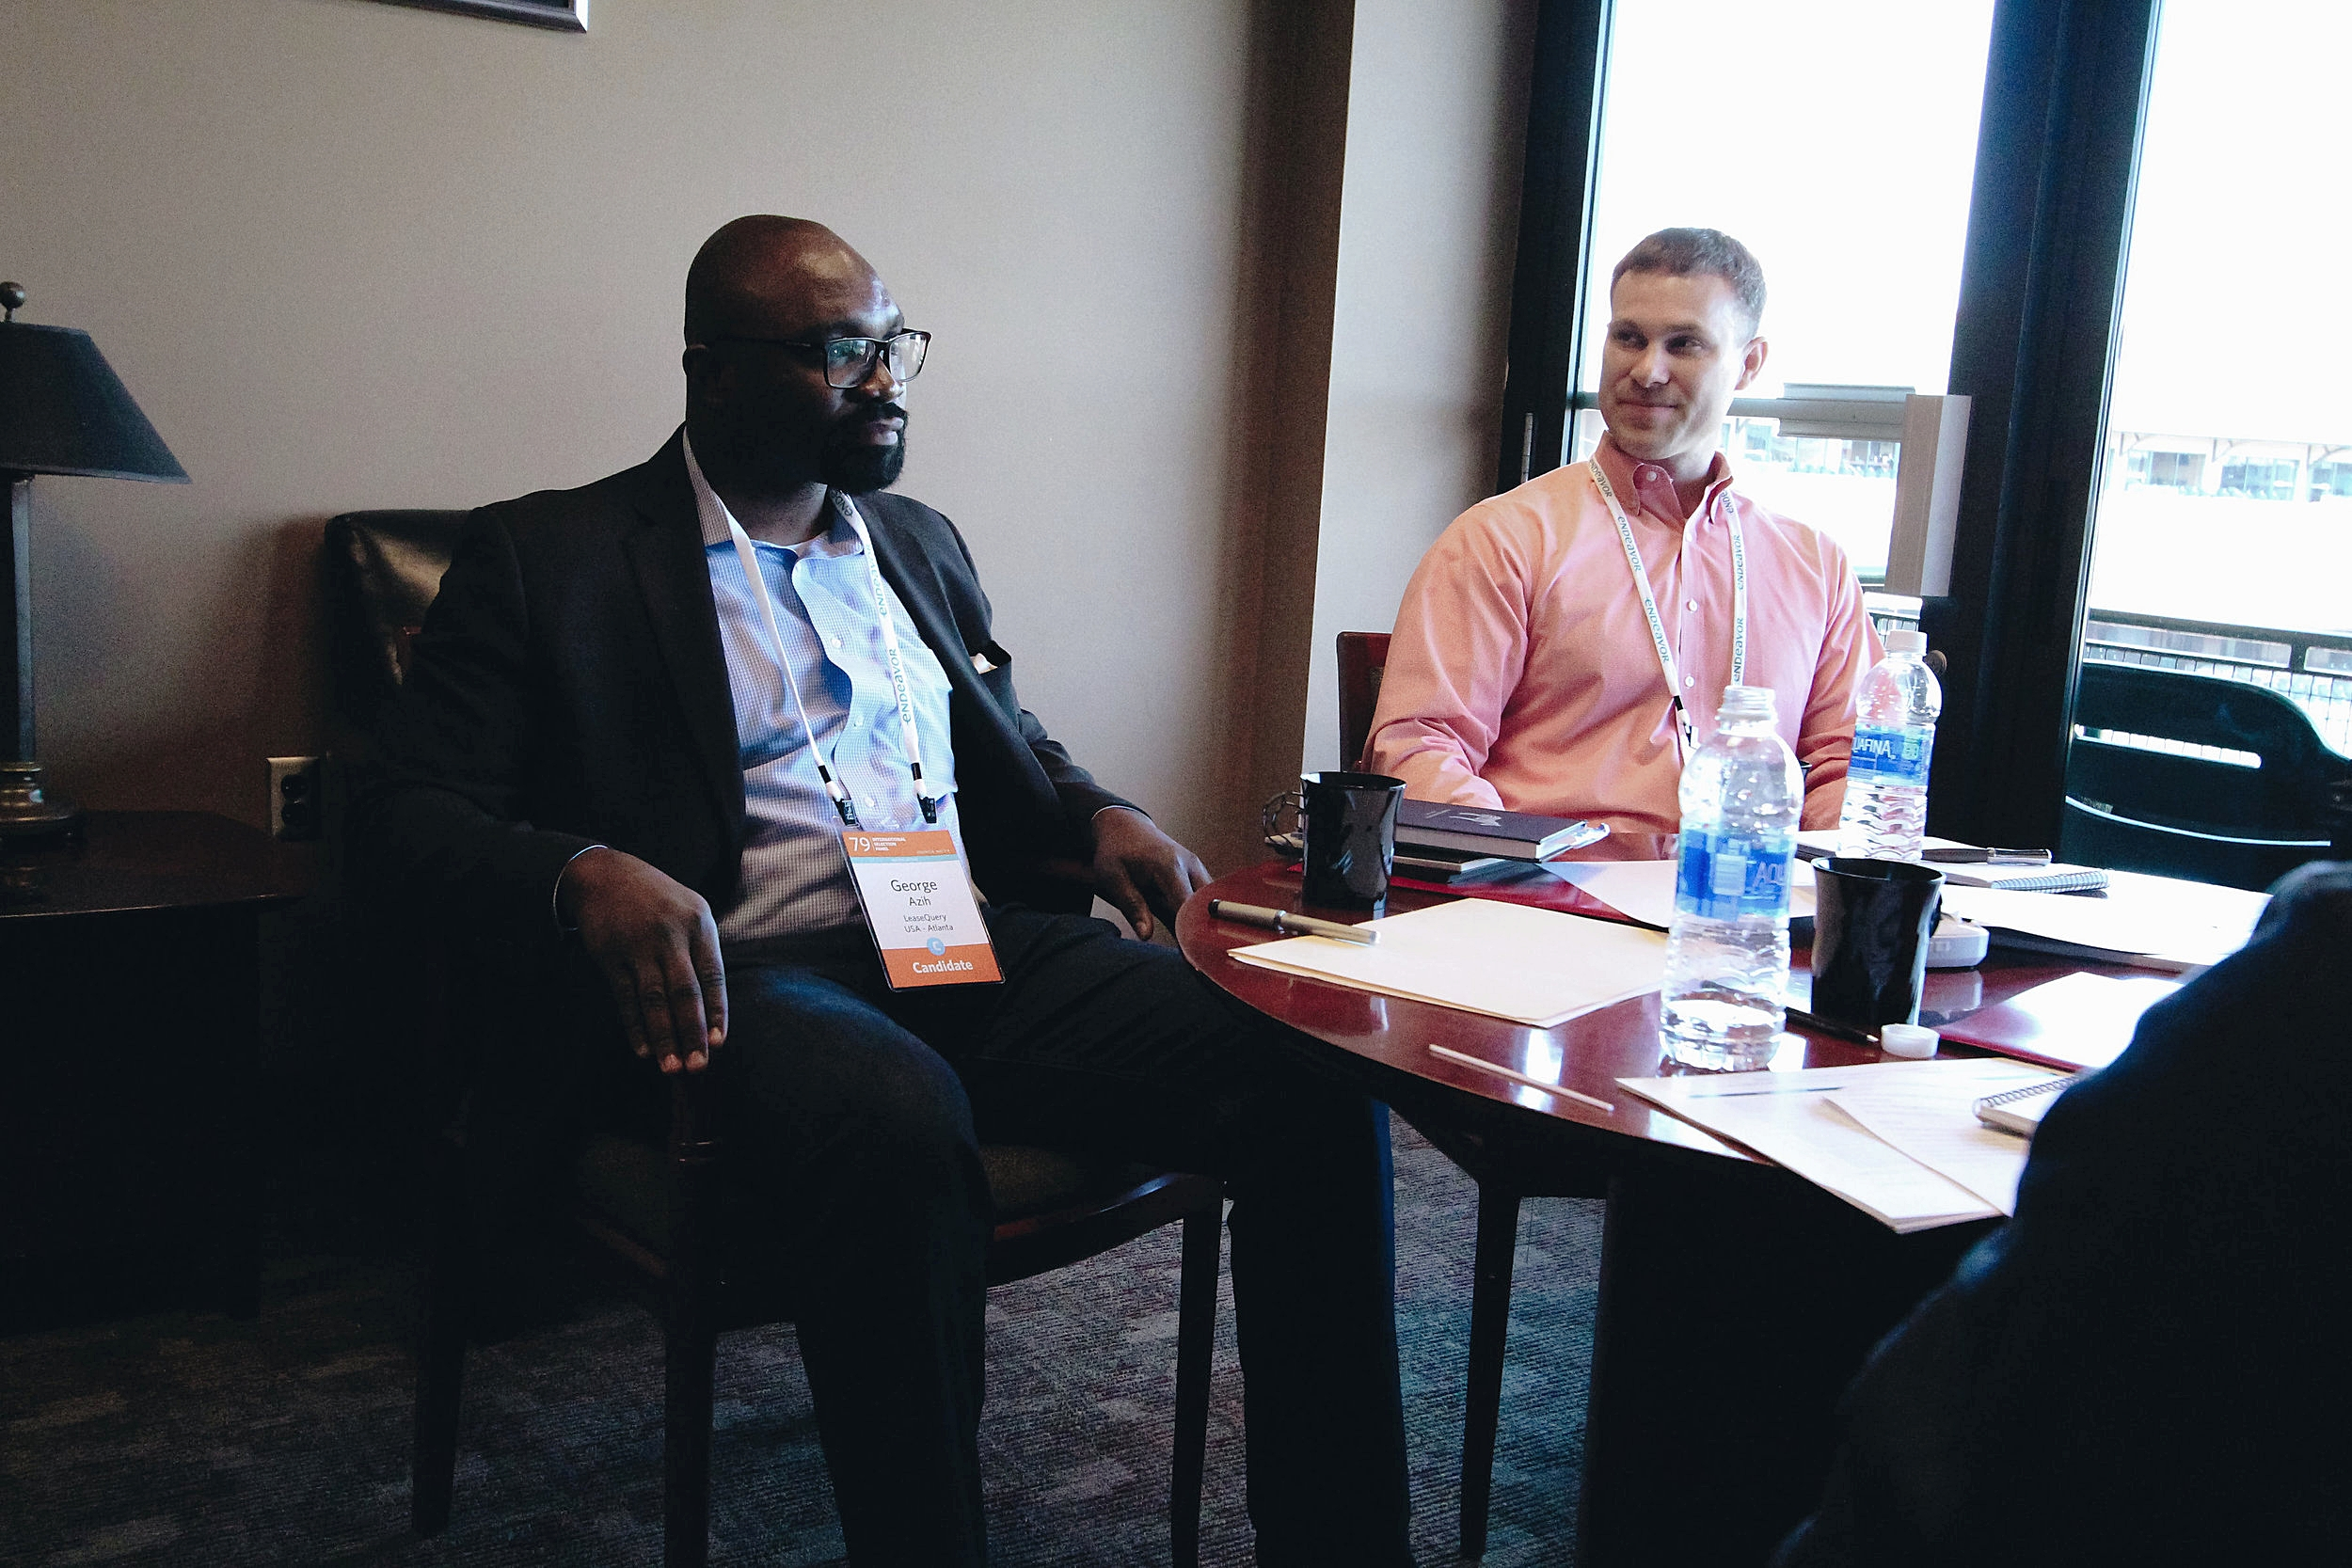 George and Chris interview with panelists at the 79th International Selection Panel in Louisville, Kentucky.